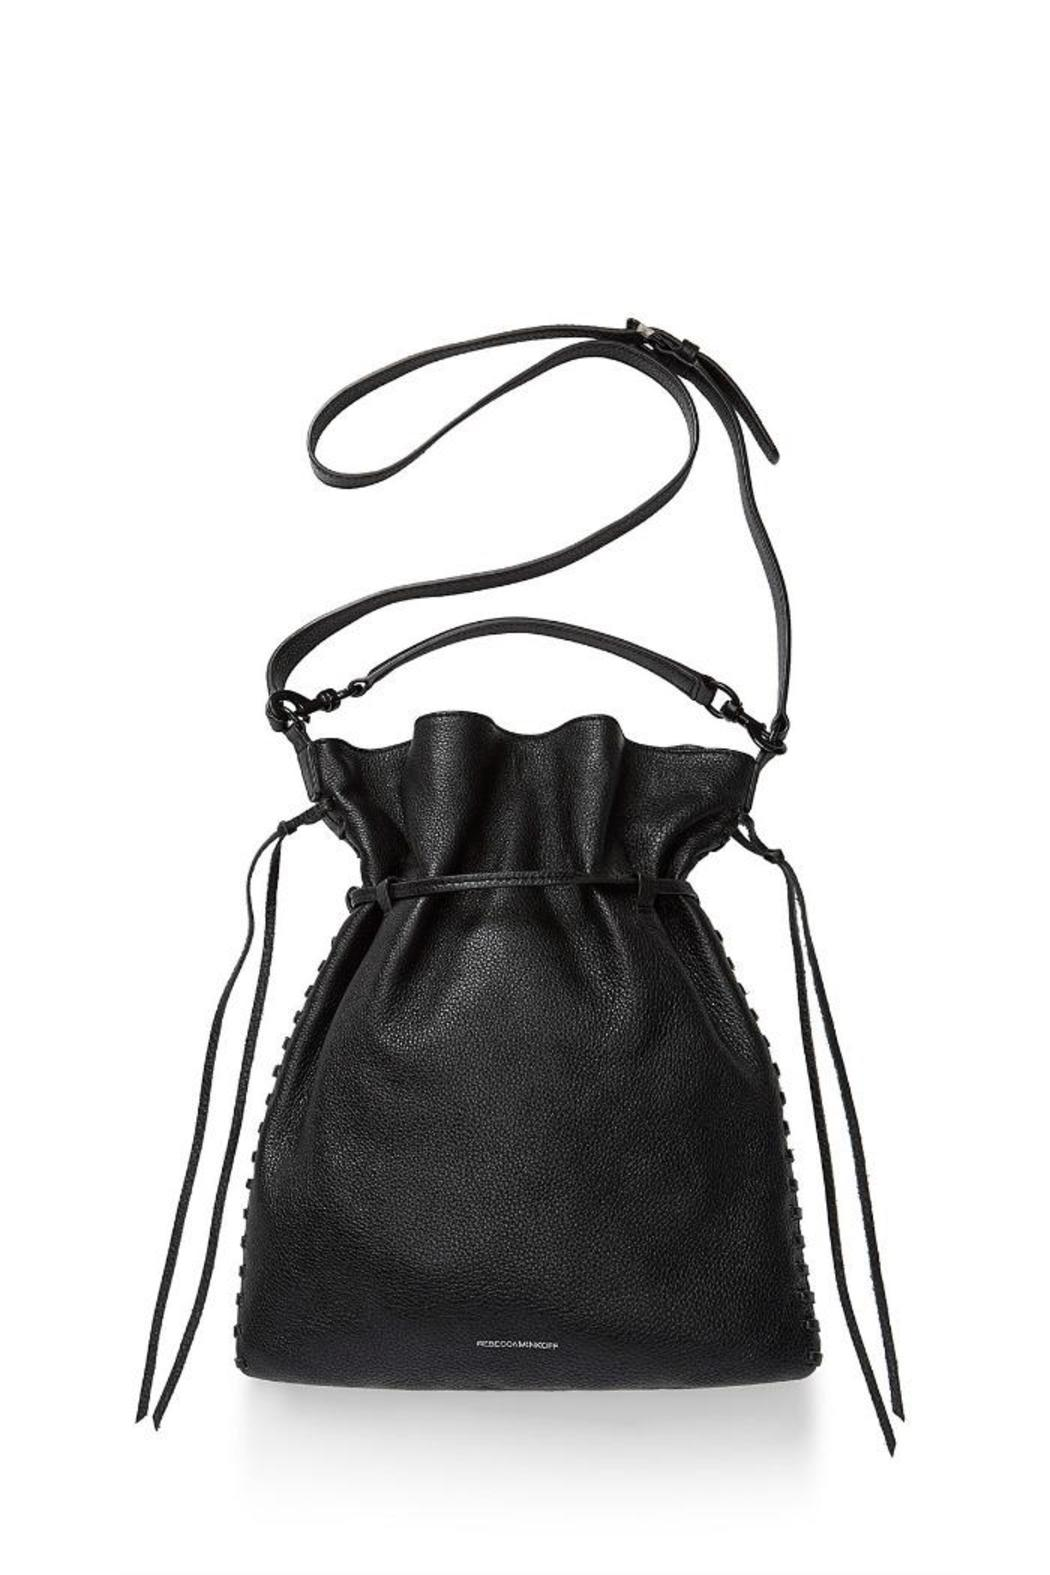 Rebecca Minkoff Large Moto Drawstring Bag from Canada by Mint ...